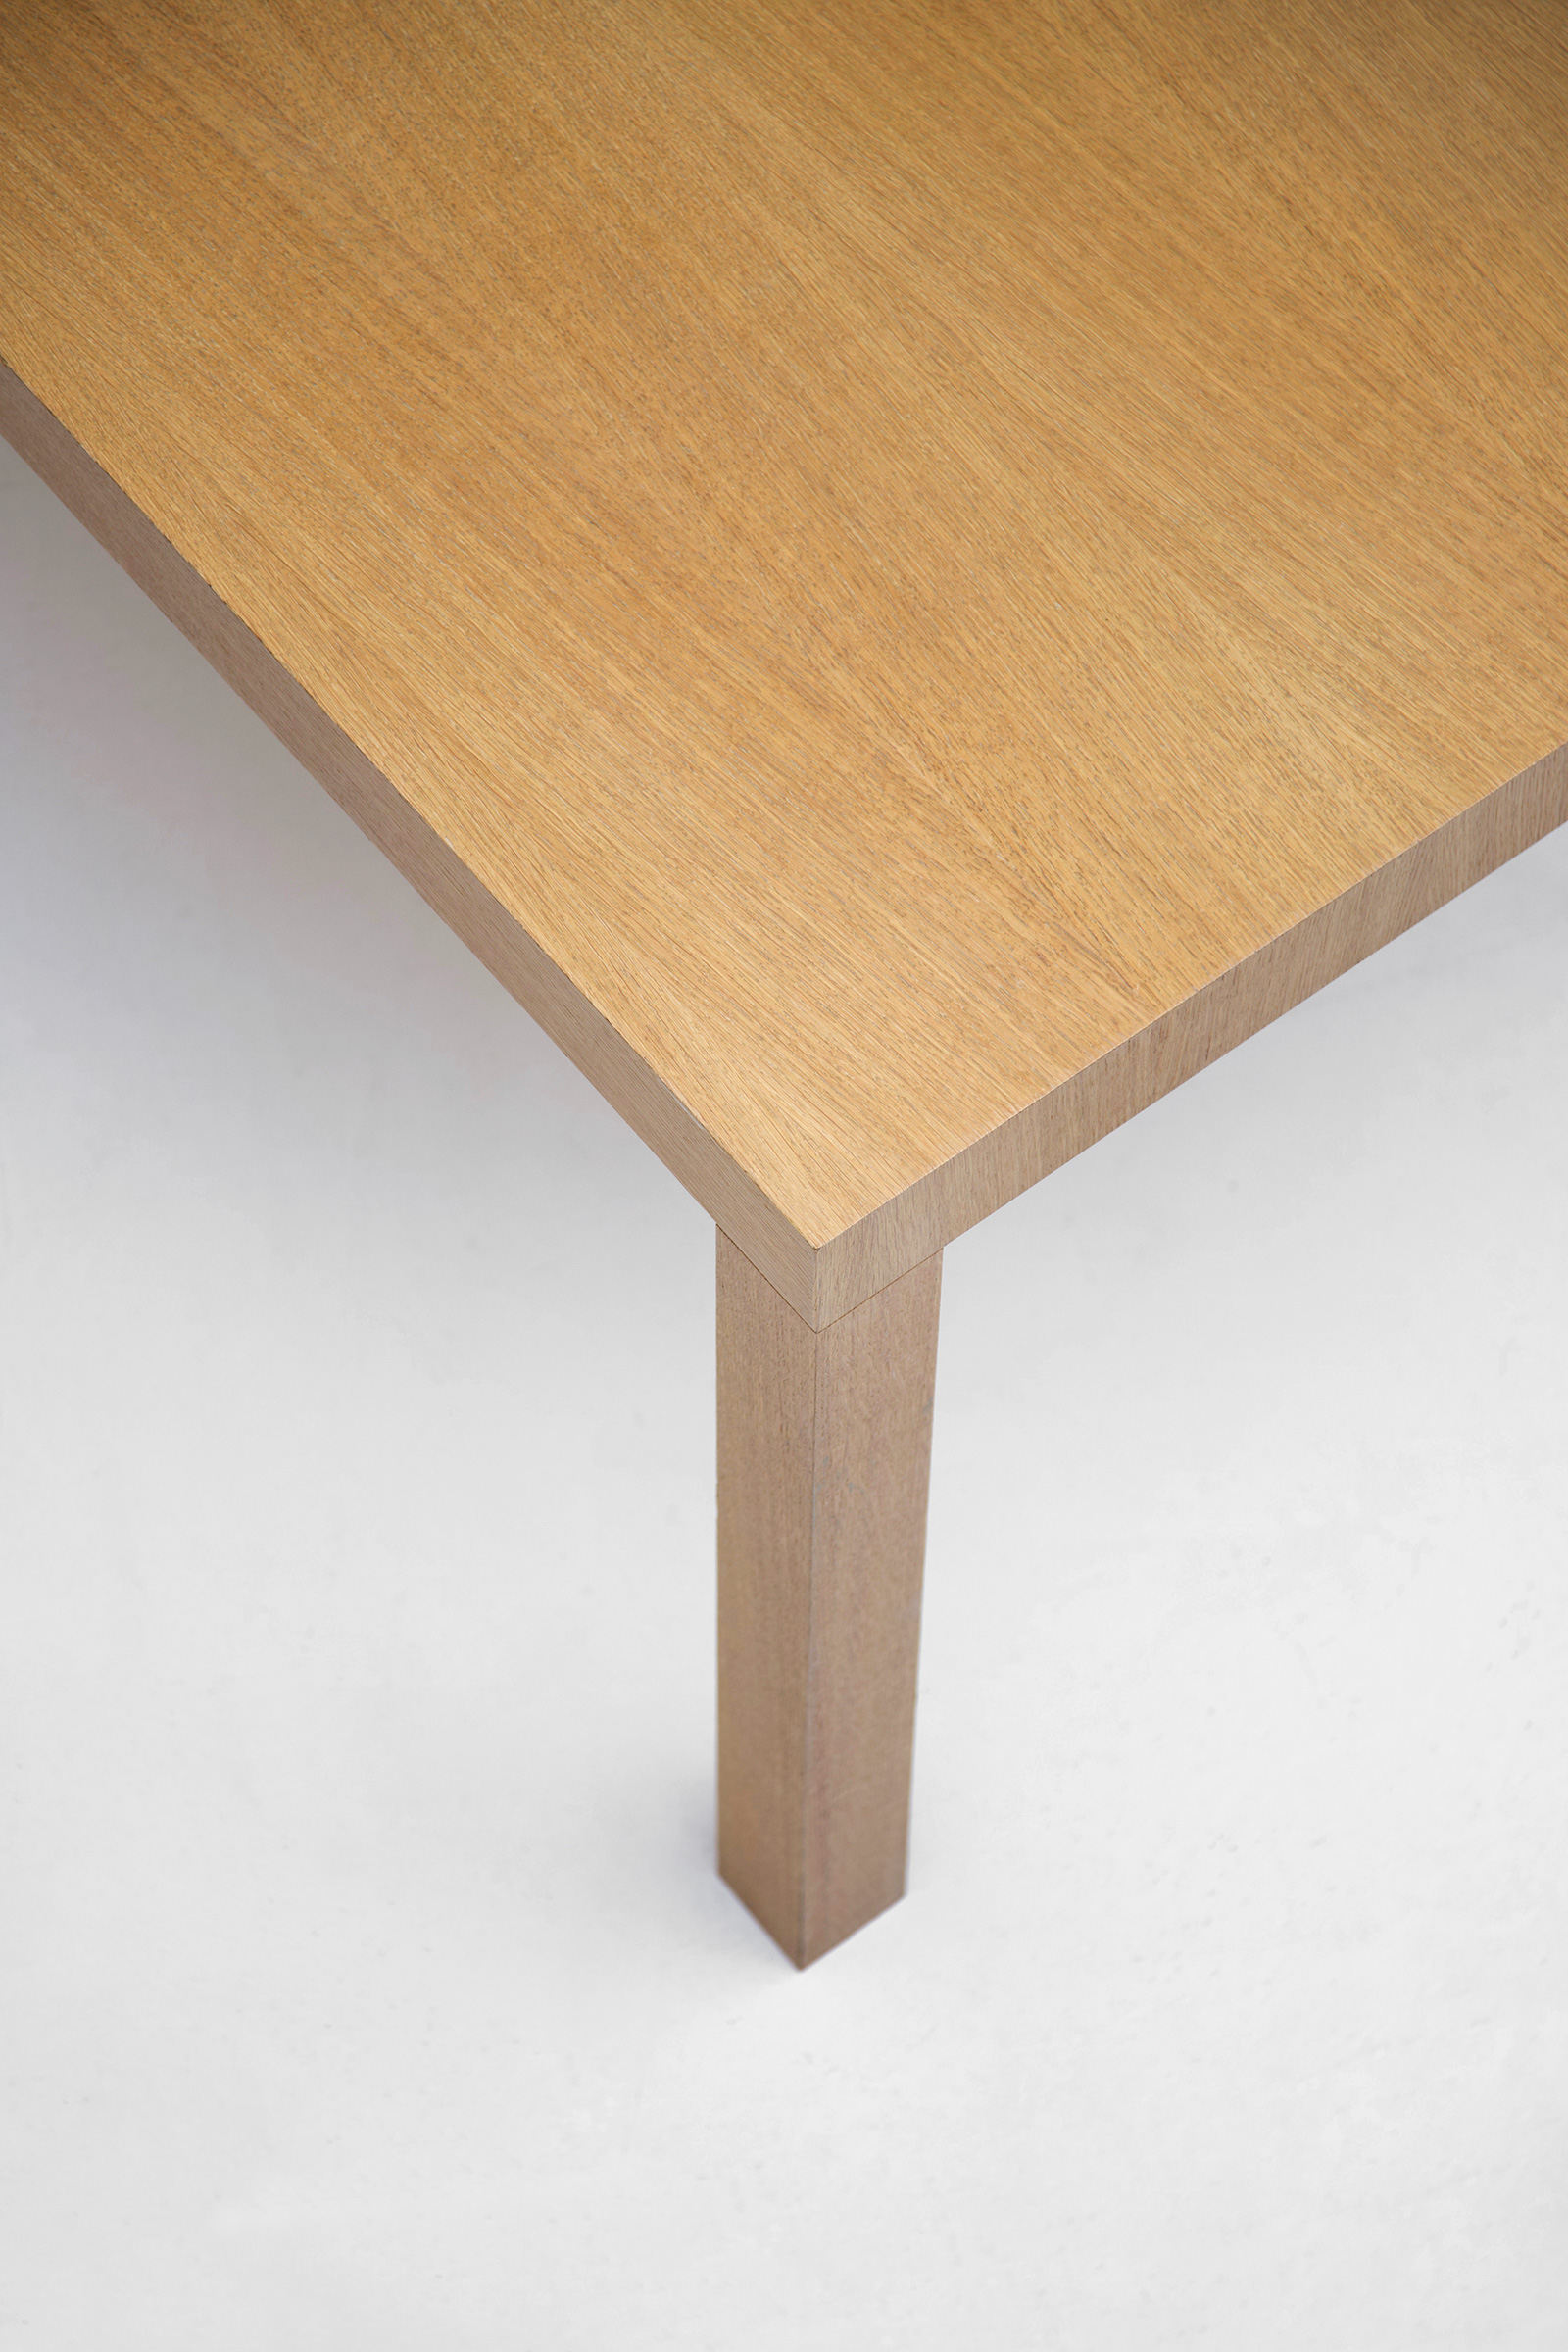 Minimalist Oak Dining Table